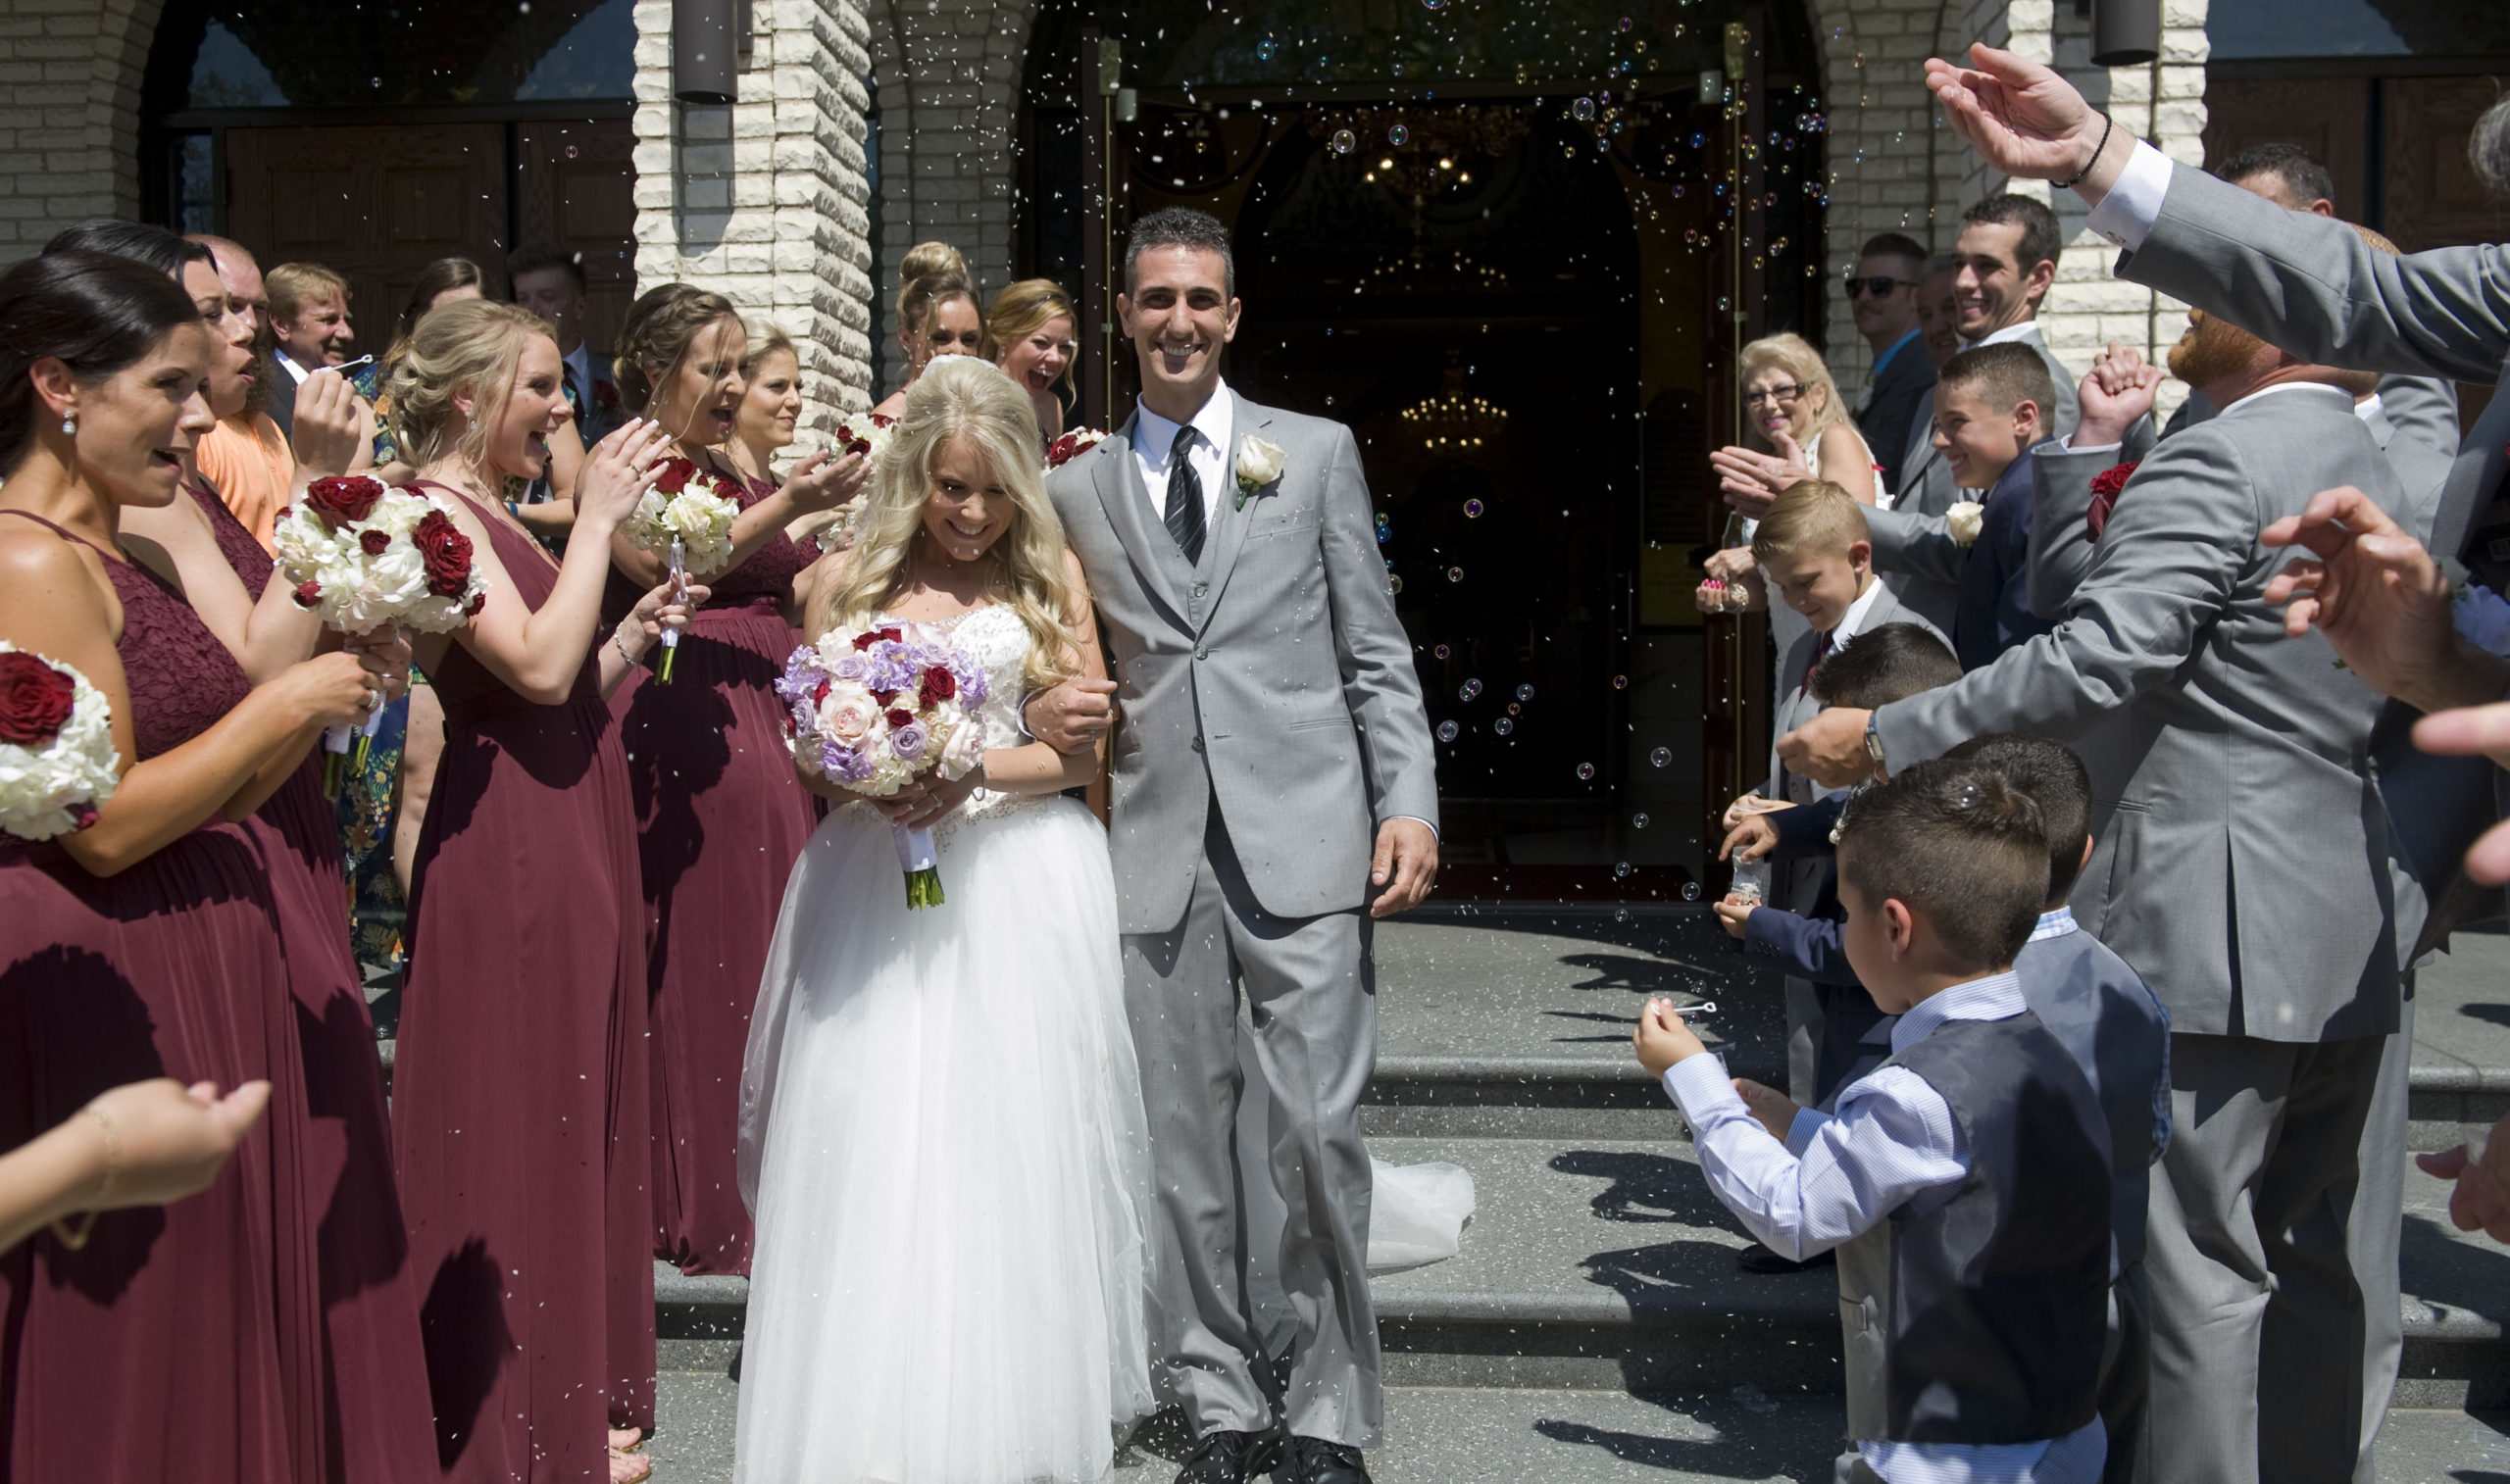 St Demetrios Wedding Photographer